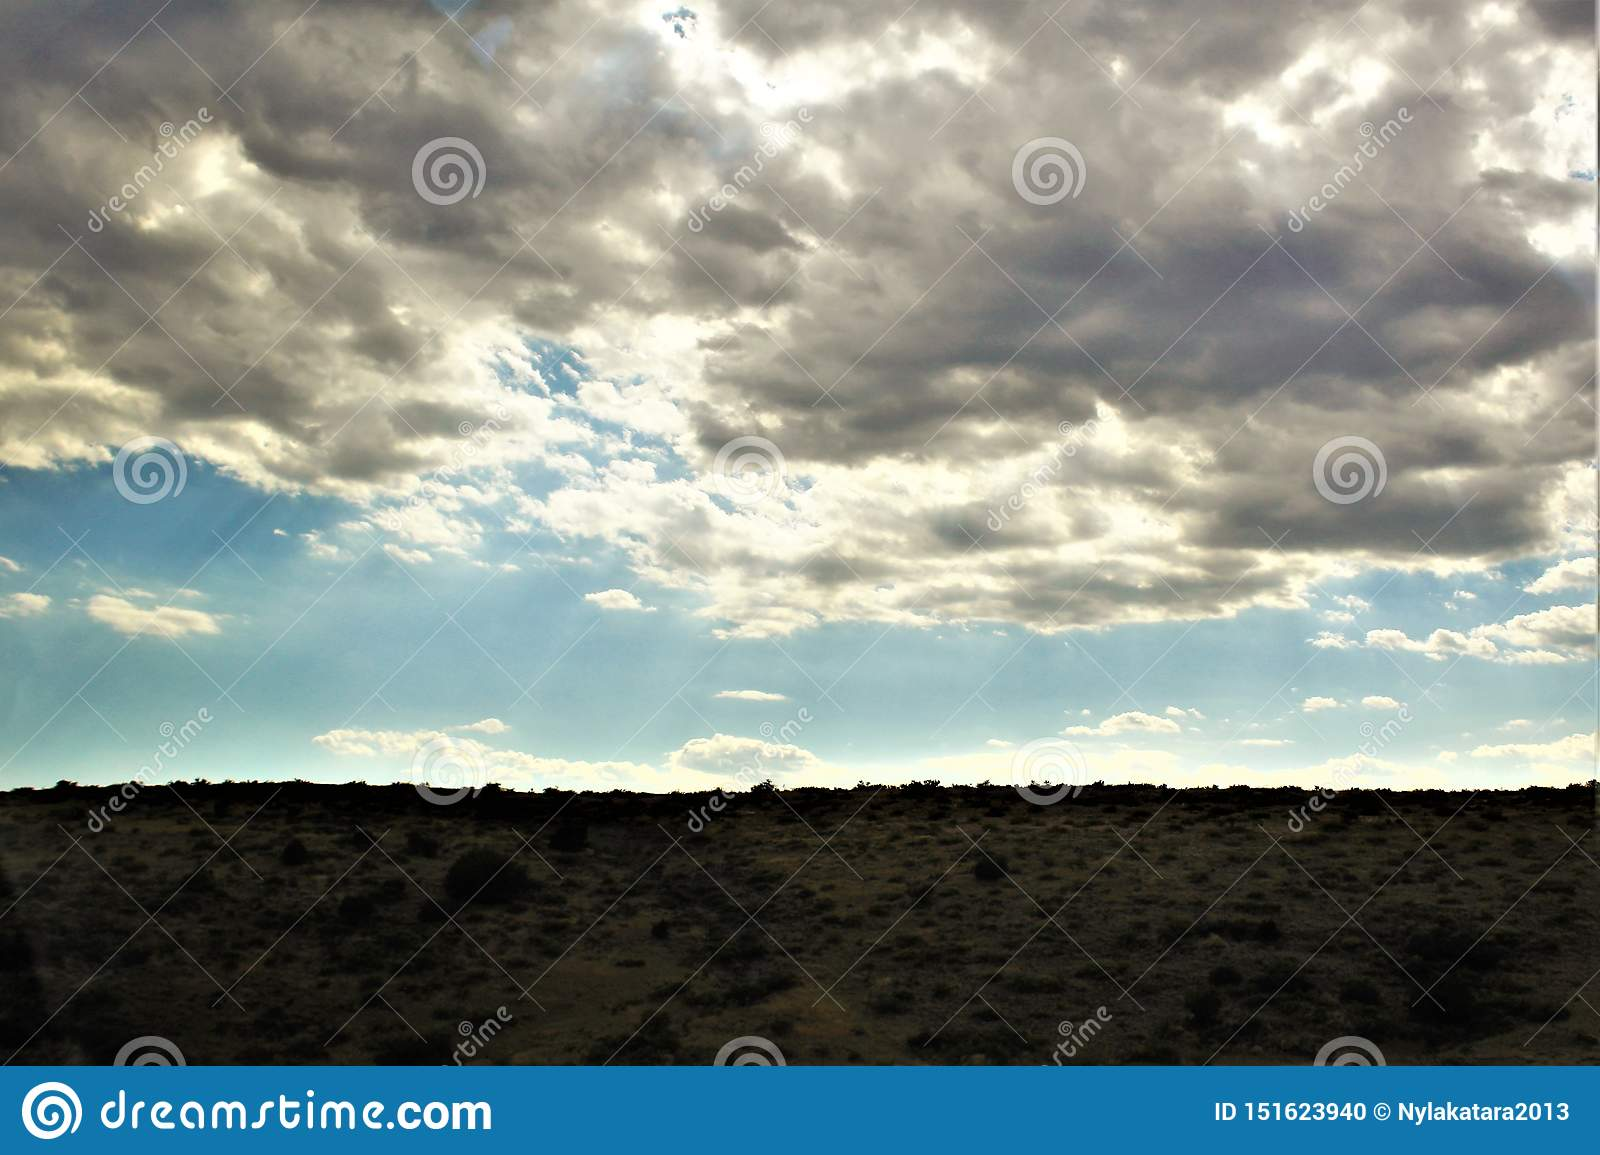 Landscape scenery Jerome and Phoenix, Maricopa County, Arizona, United States